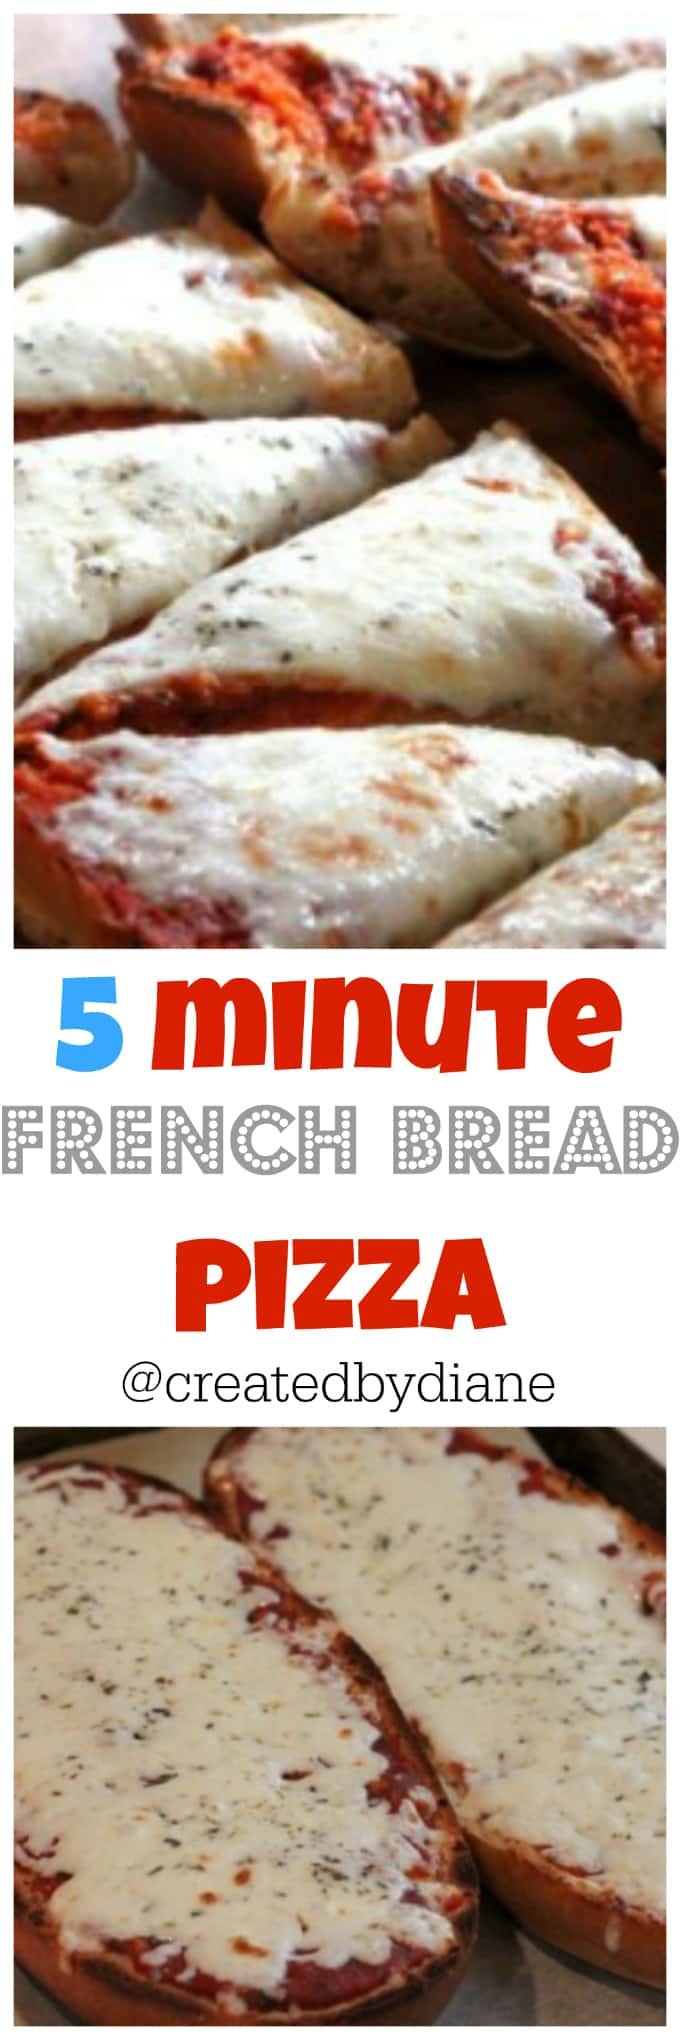 5 minute french bread pizza @createdbydiane